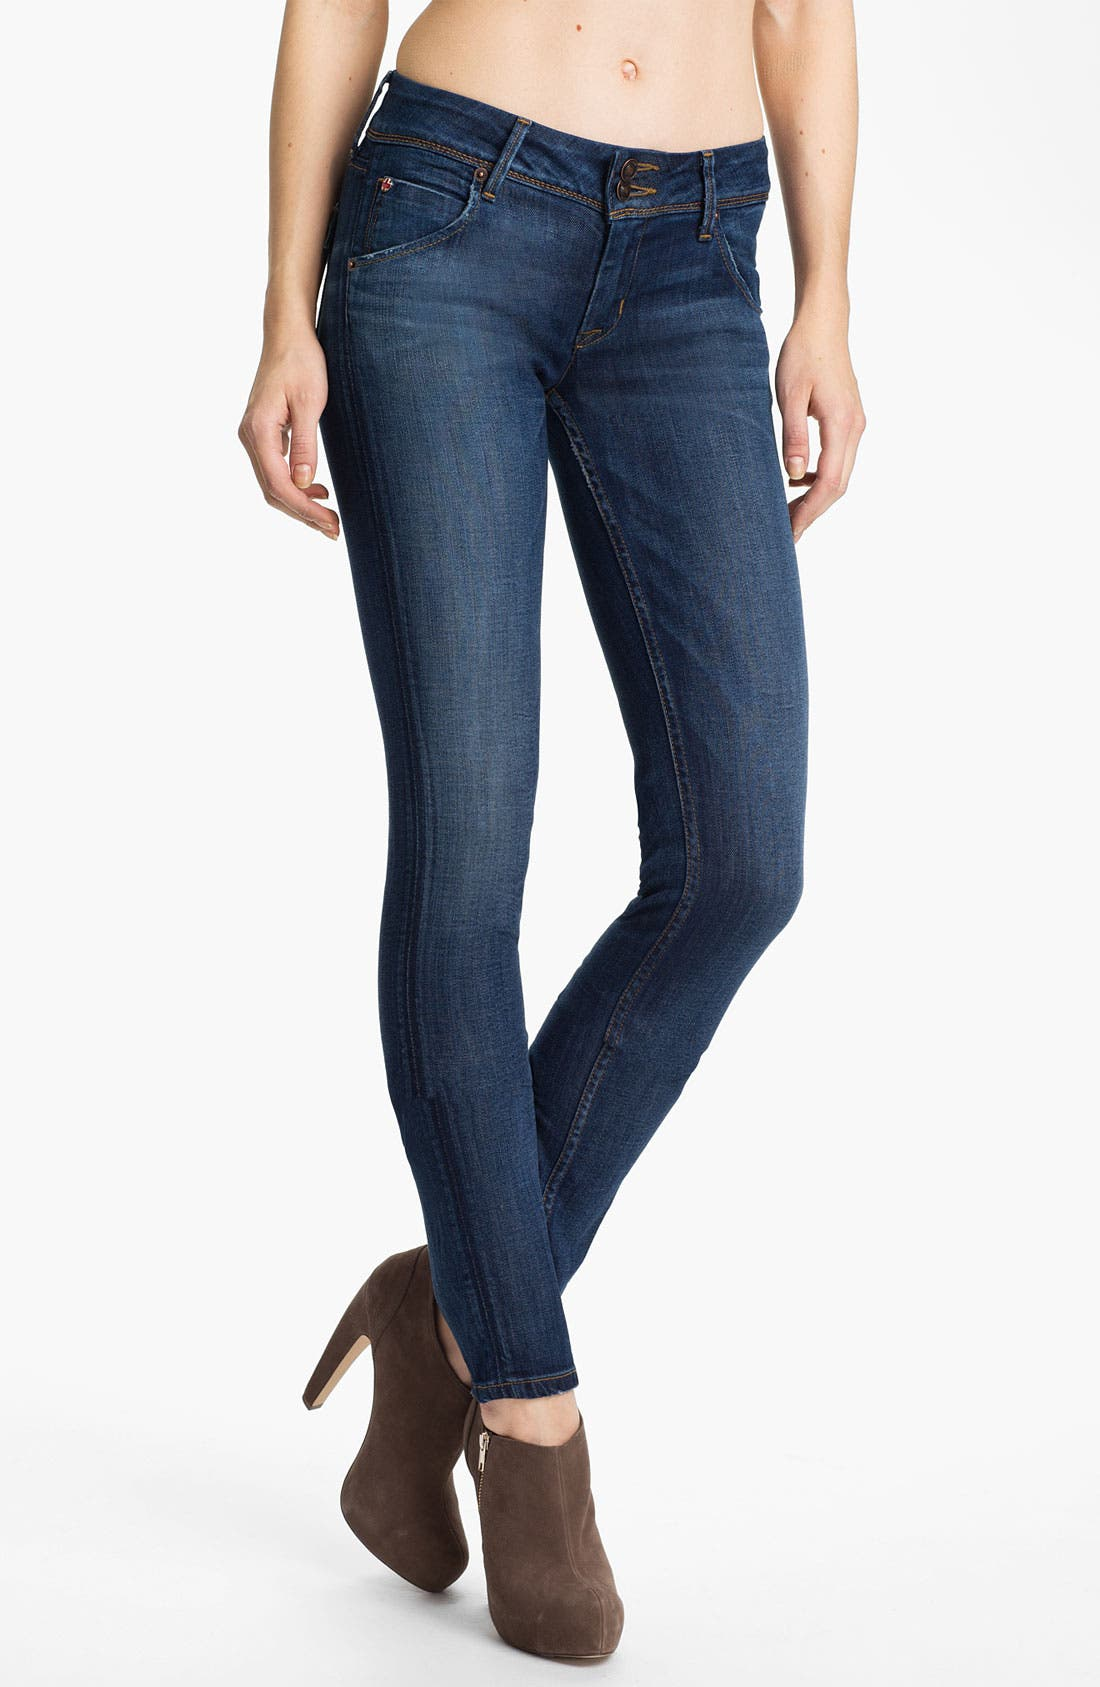 Alternate Image 1 Selected - Hudson Jeans 'Collin' Skinny Stretch Jeans (Lownes)